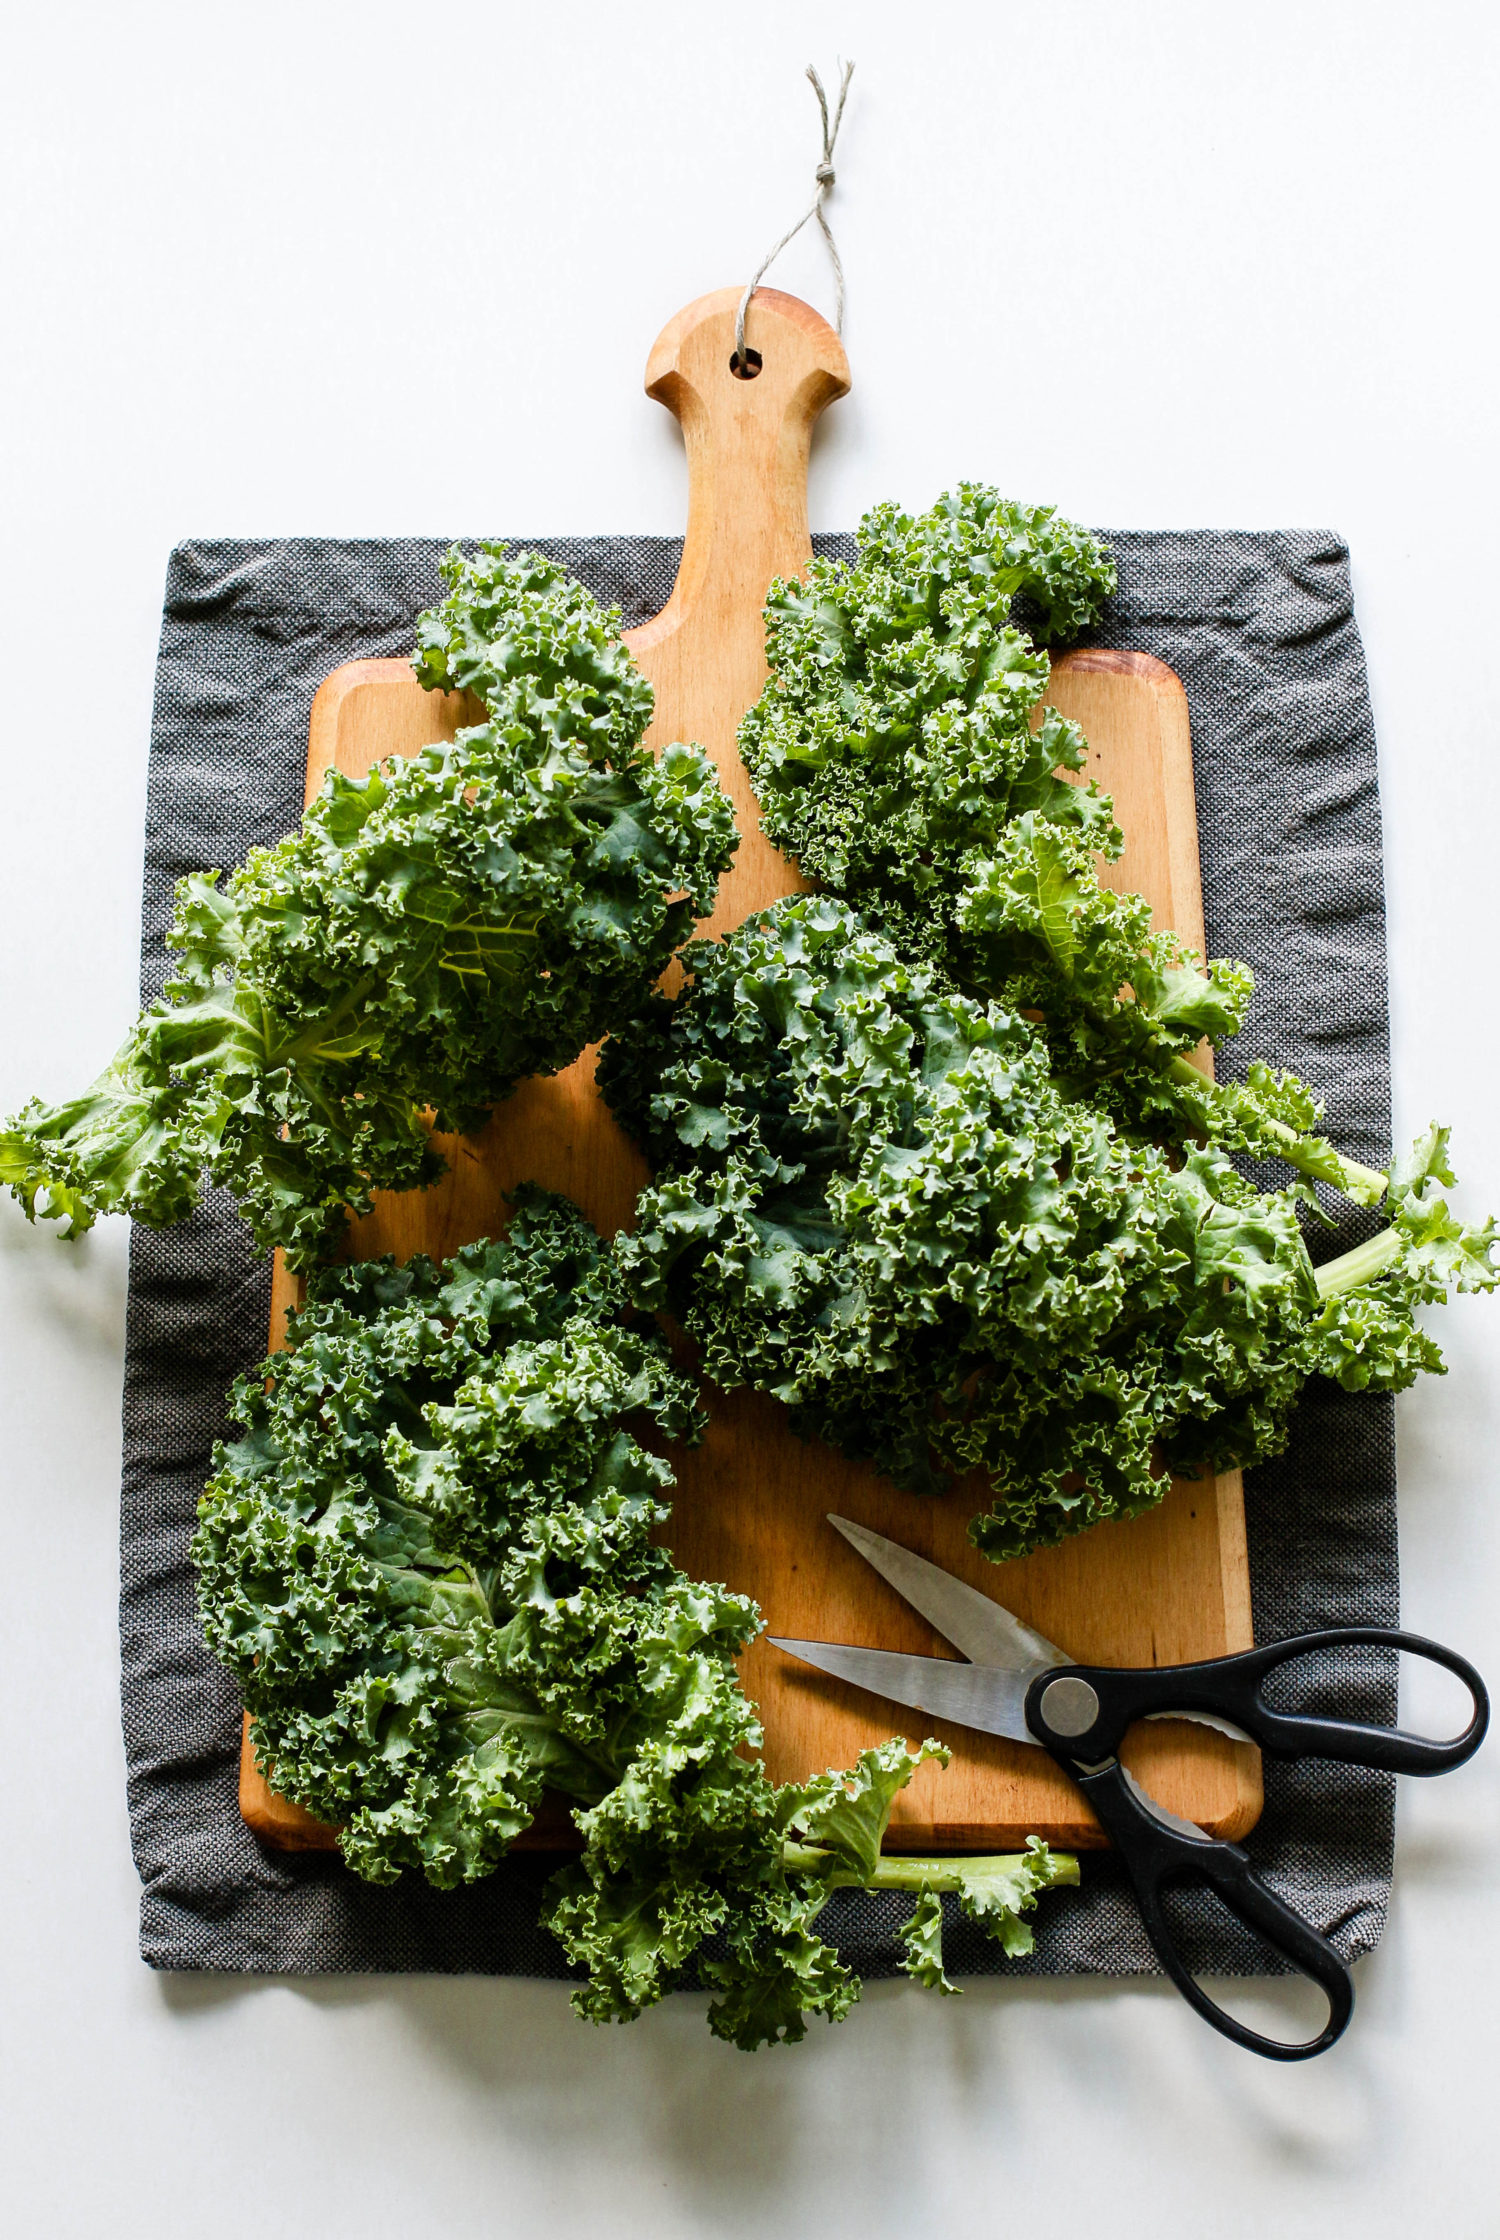 My Go-To Kale Salad by Flora & Vino